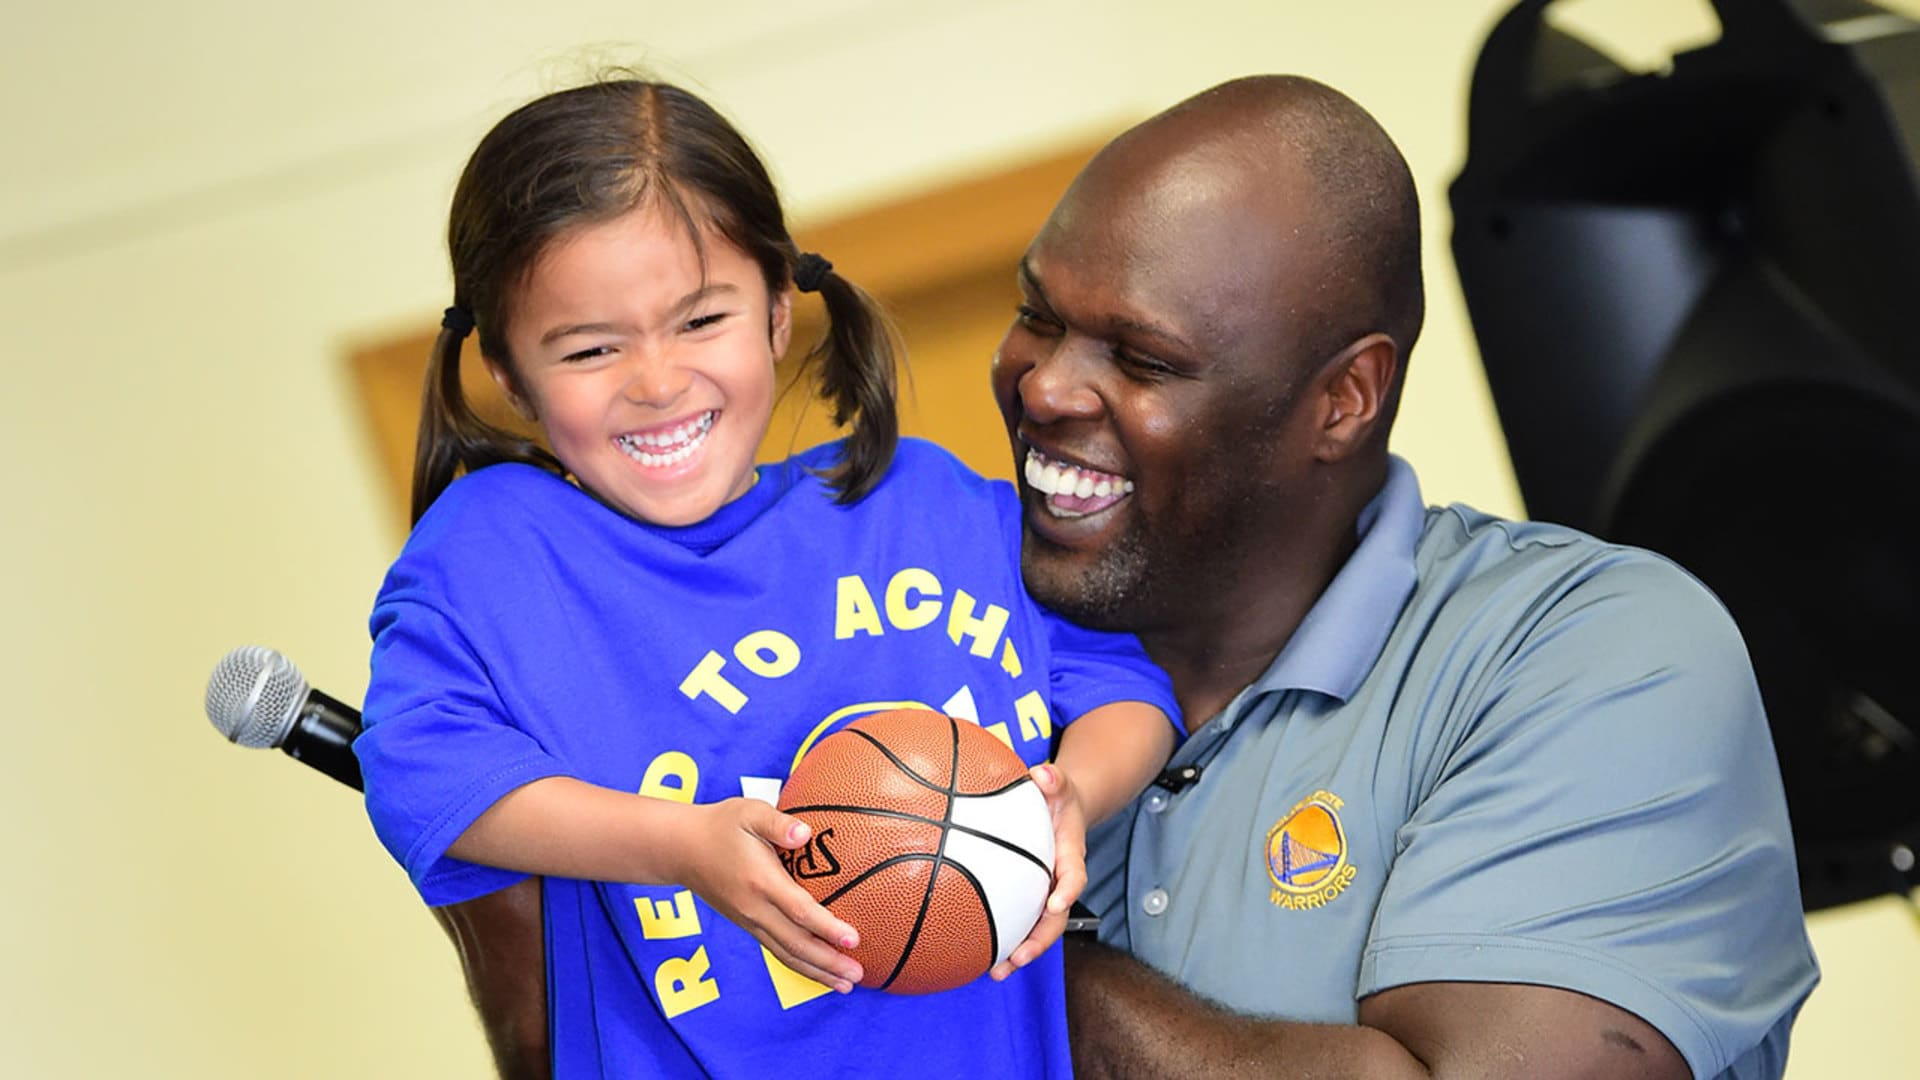 The Warriors' 2018-19 Community Impact by the Numbers